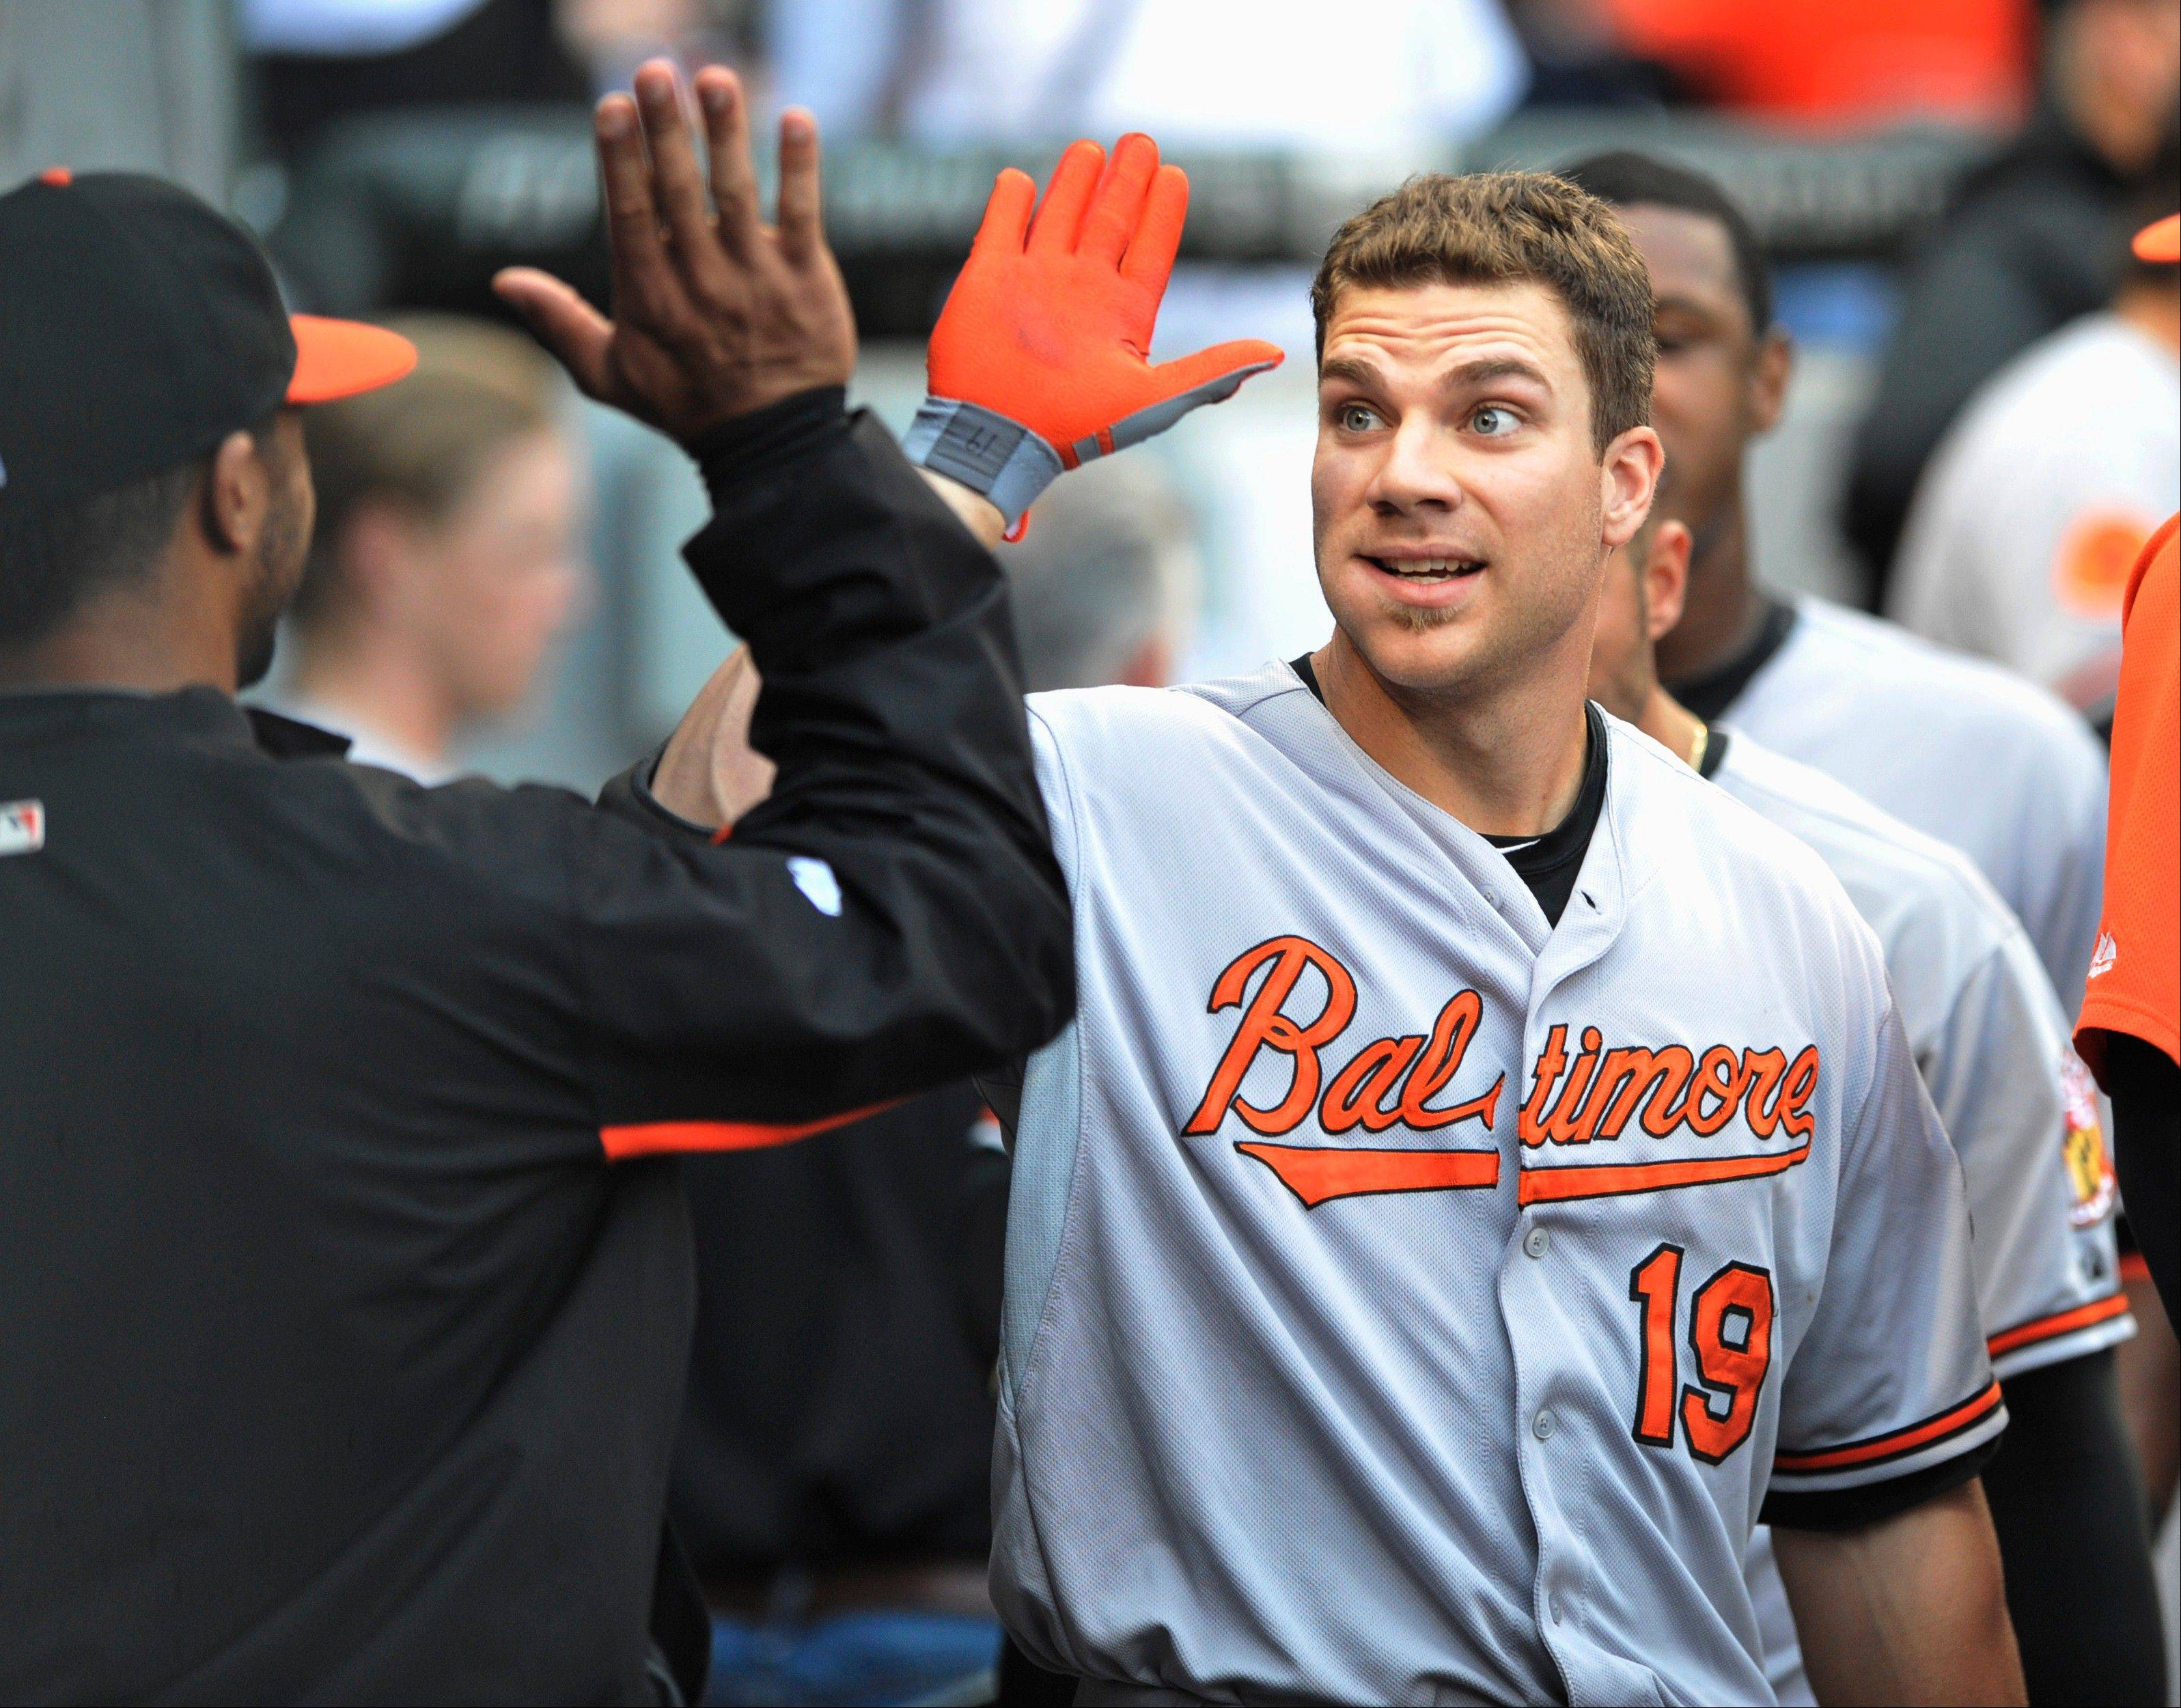 The Orioles' Chris Davis celebrates with teammates after hitting a solo home run during the fourth inning Wednesday night against the White Sox.